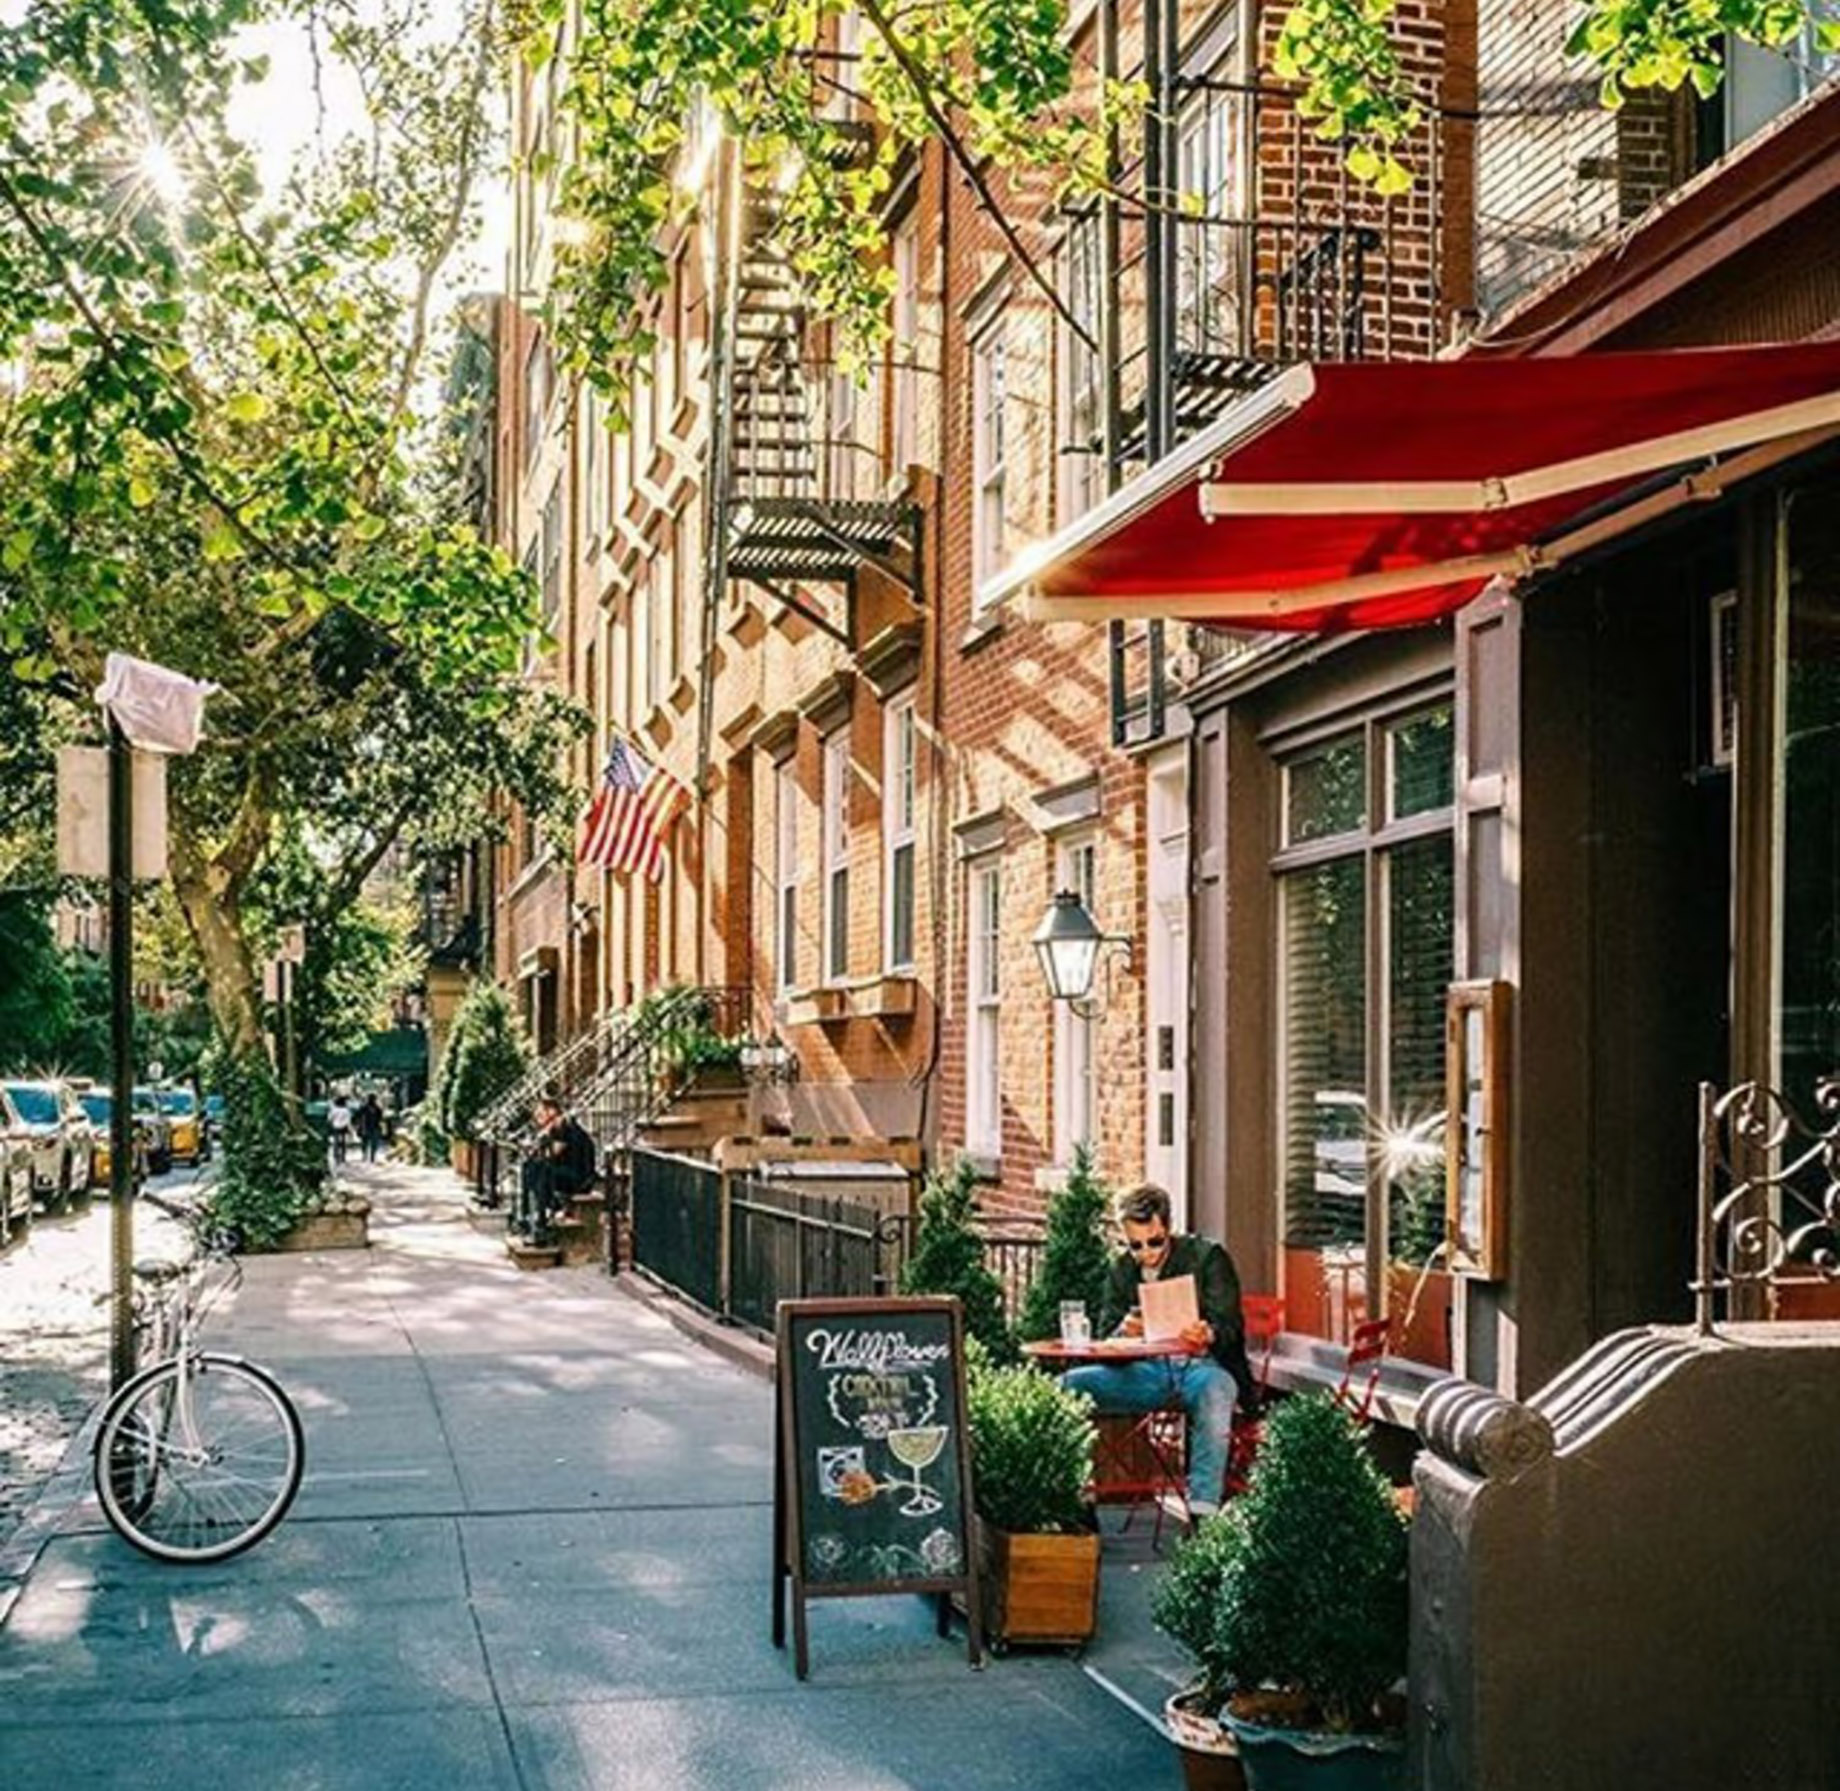 Classic Architecture - New York City Luxury Real Estate - Why Living in the West Village is a Must